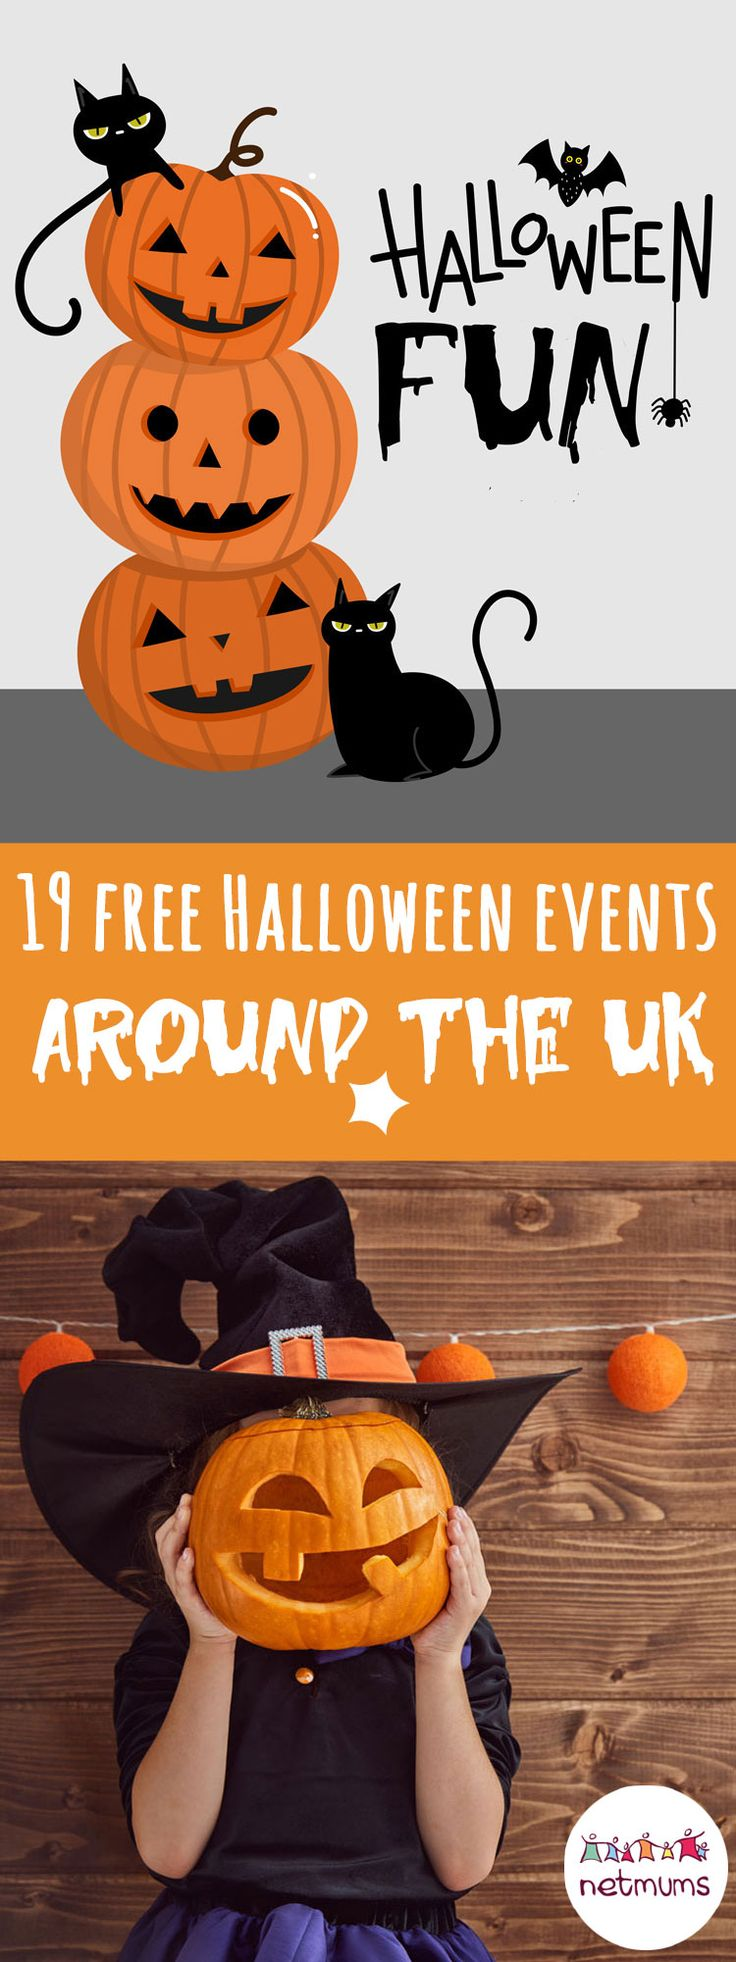 Top 19 free Halloween events around the UK. Looking for days out with your kids this Halloween that won't cost you a penny. You're in luck ... here are 19 of the best free Halloween events across the UK.